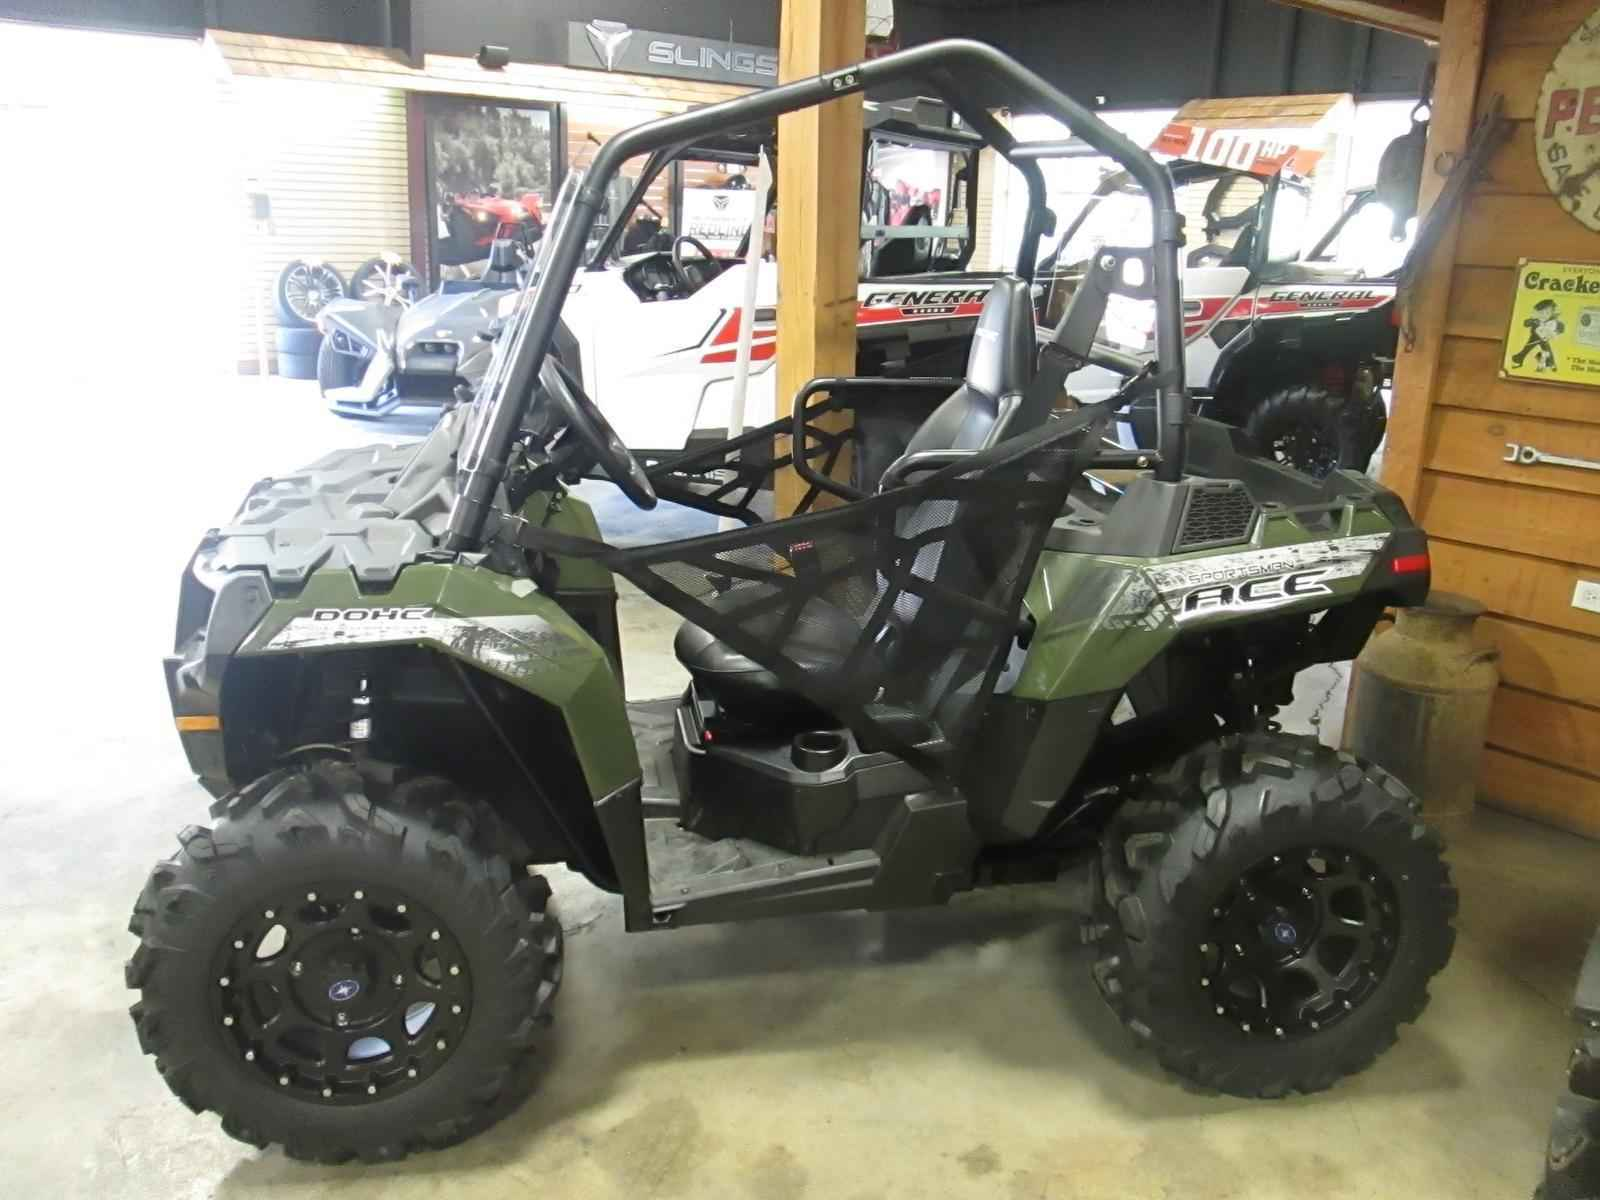 Polaris Ace For Sale >> New 2015 Polaris Ace 325 Atvs For Sale In Louisiana On Atvtrades Com